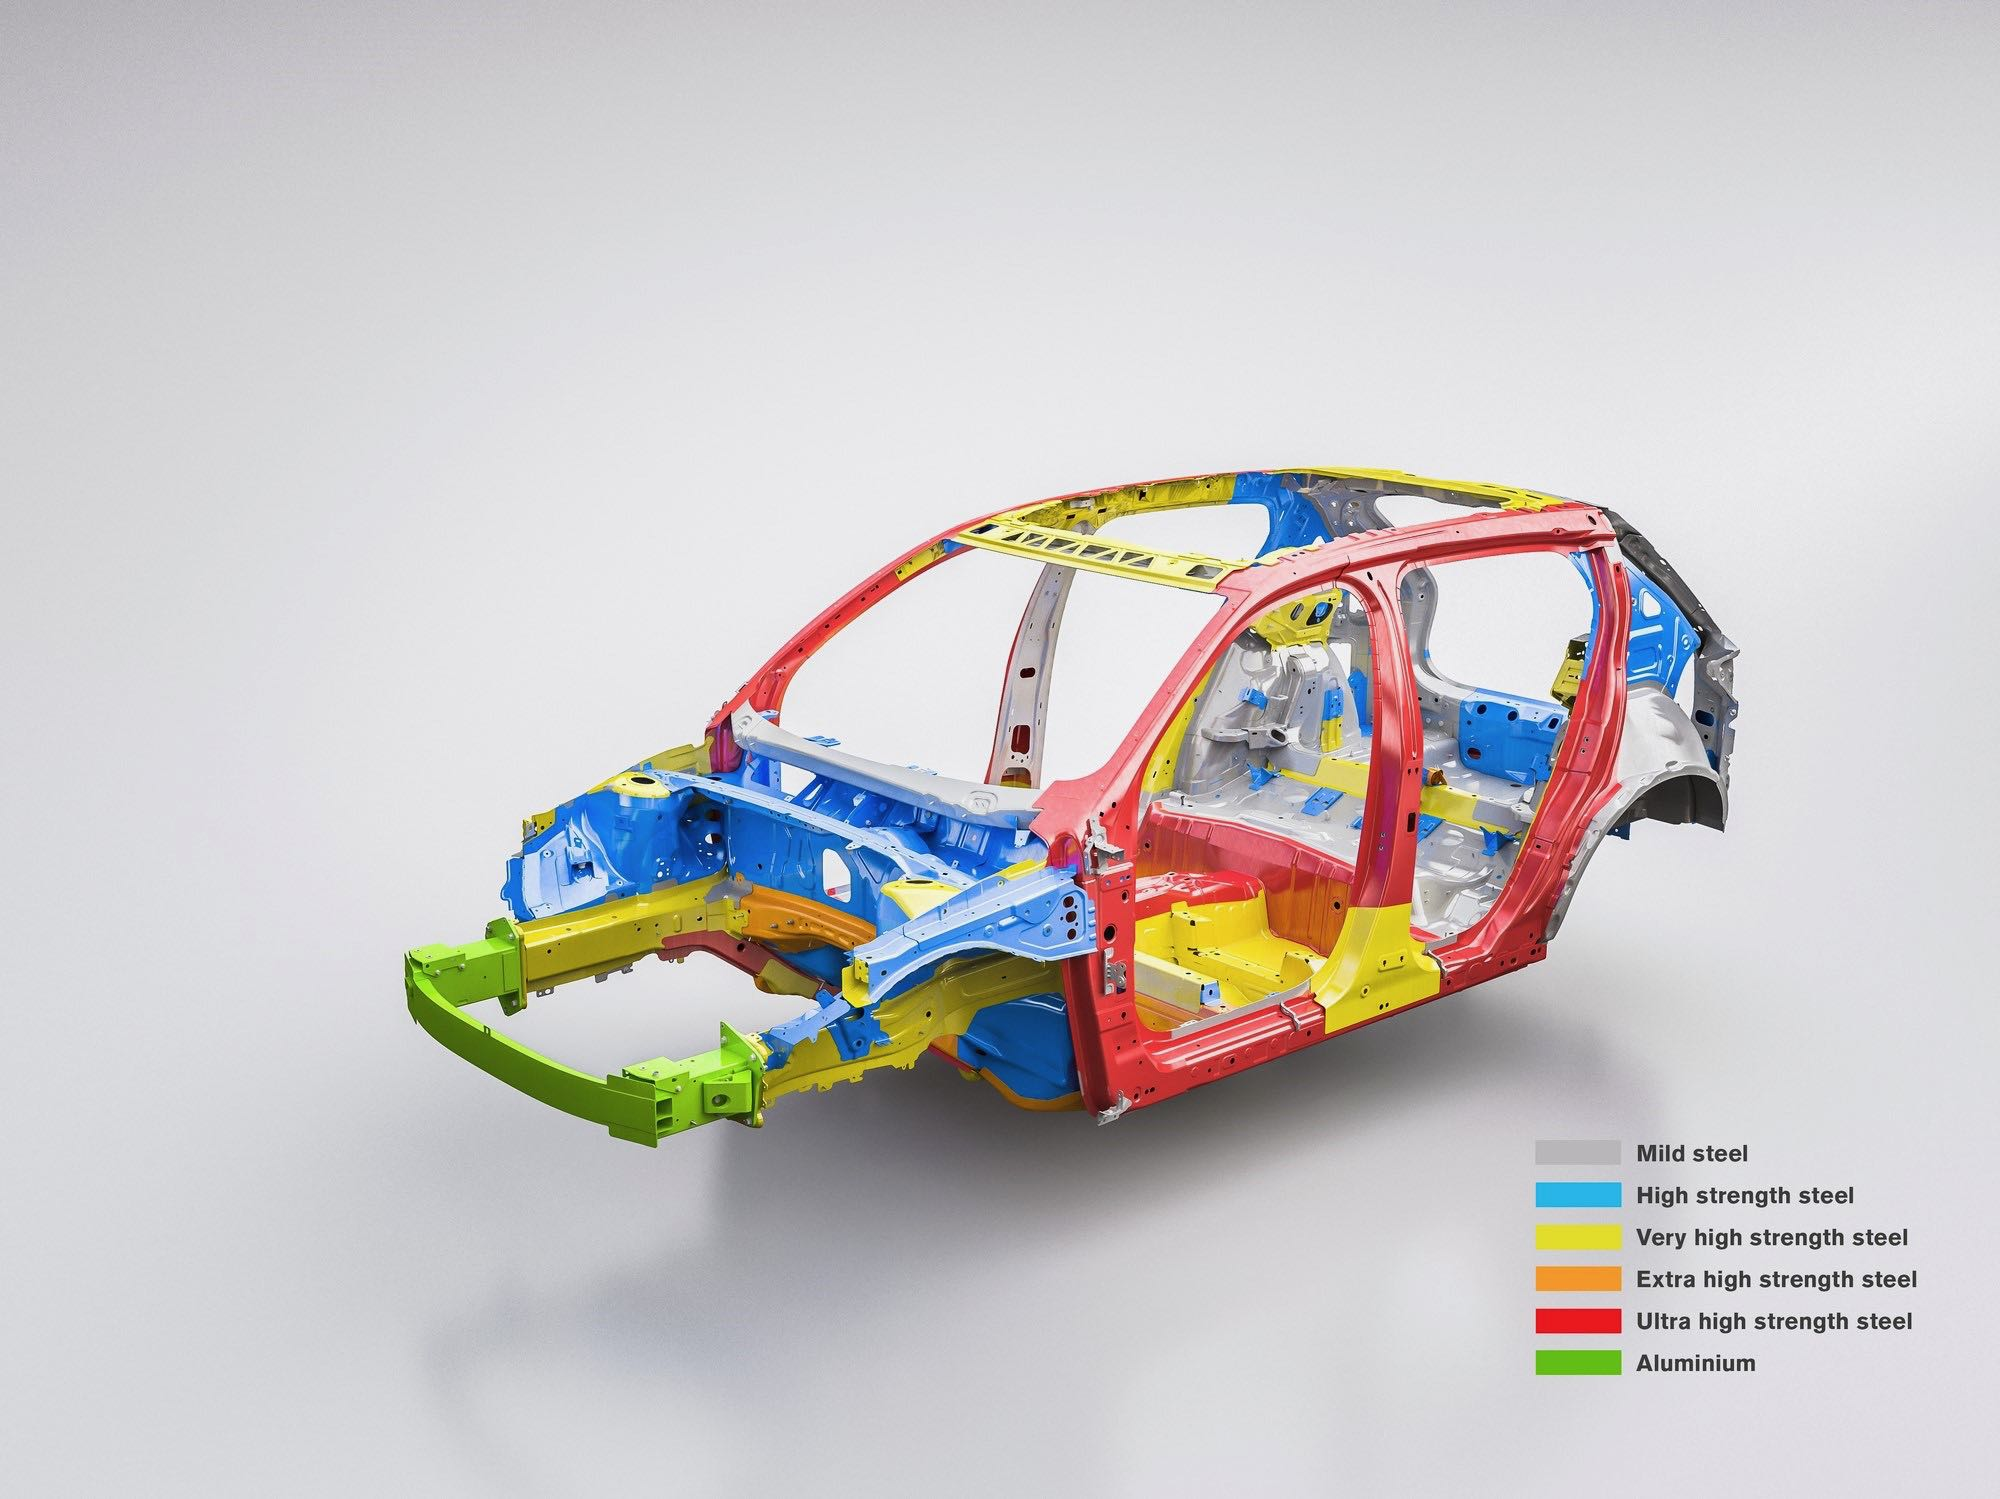 New Volvo XC40 Steel Cage Infographic -  2017, 2018, 2018 New XC40, Illustration, Images, New XC40, Safety